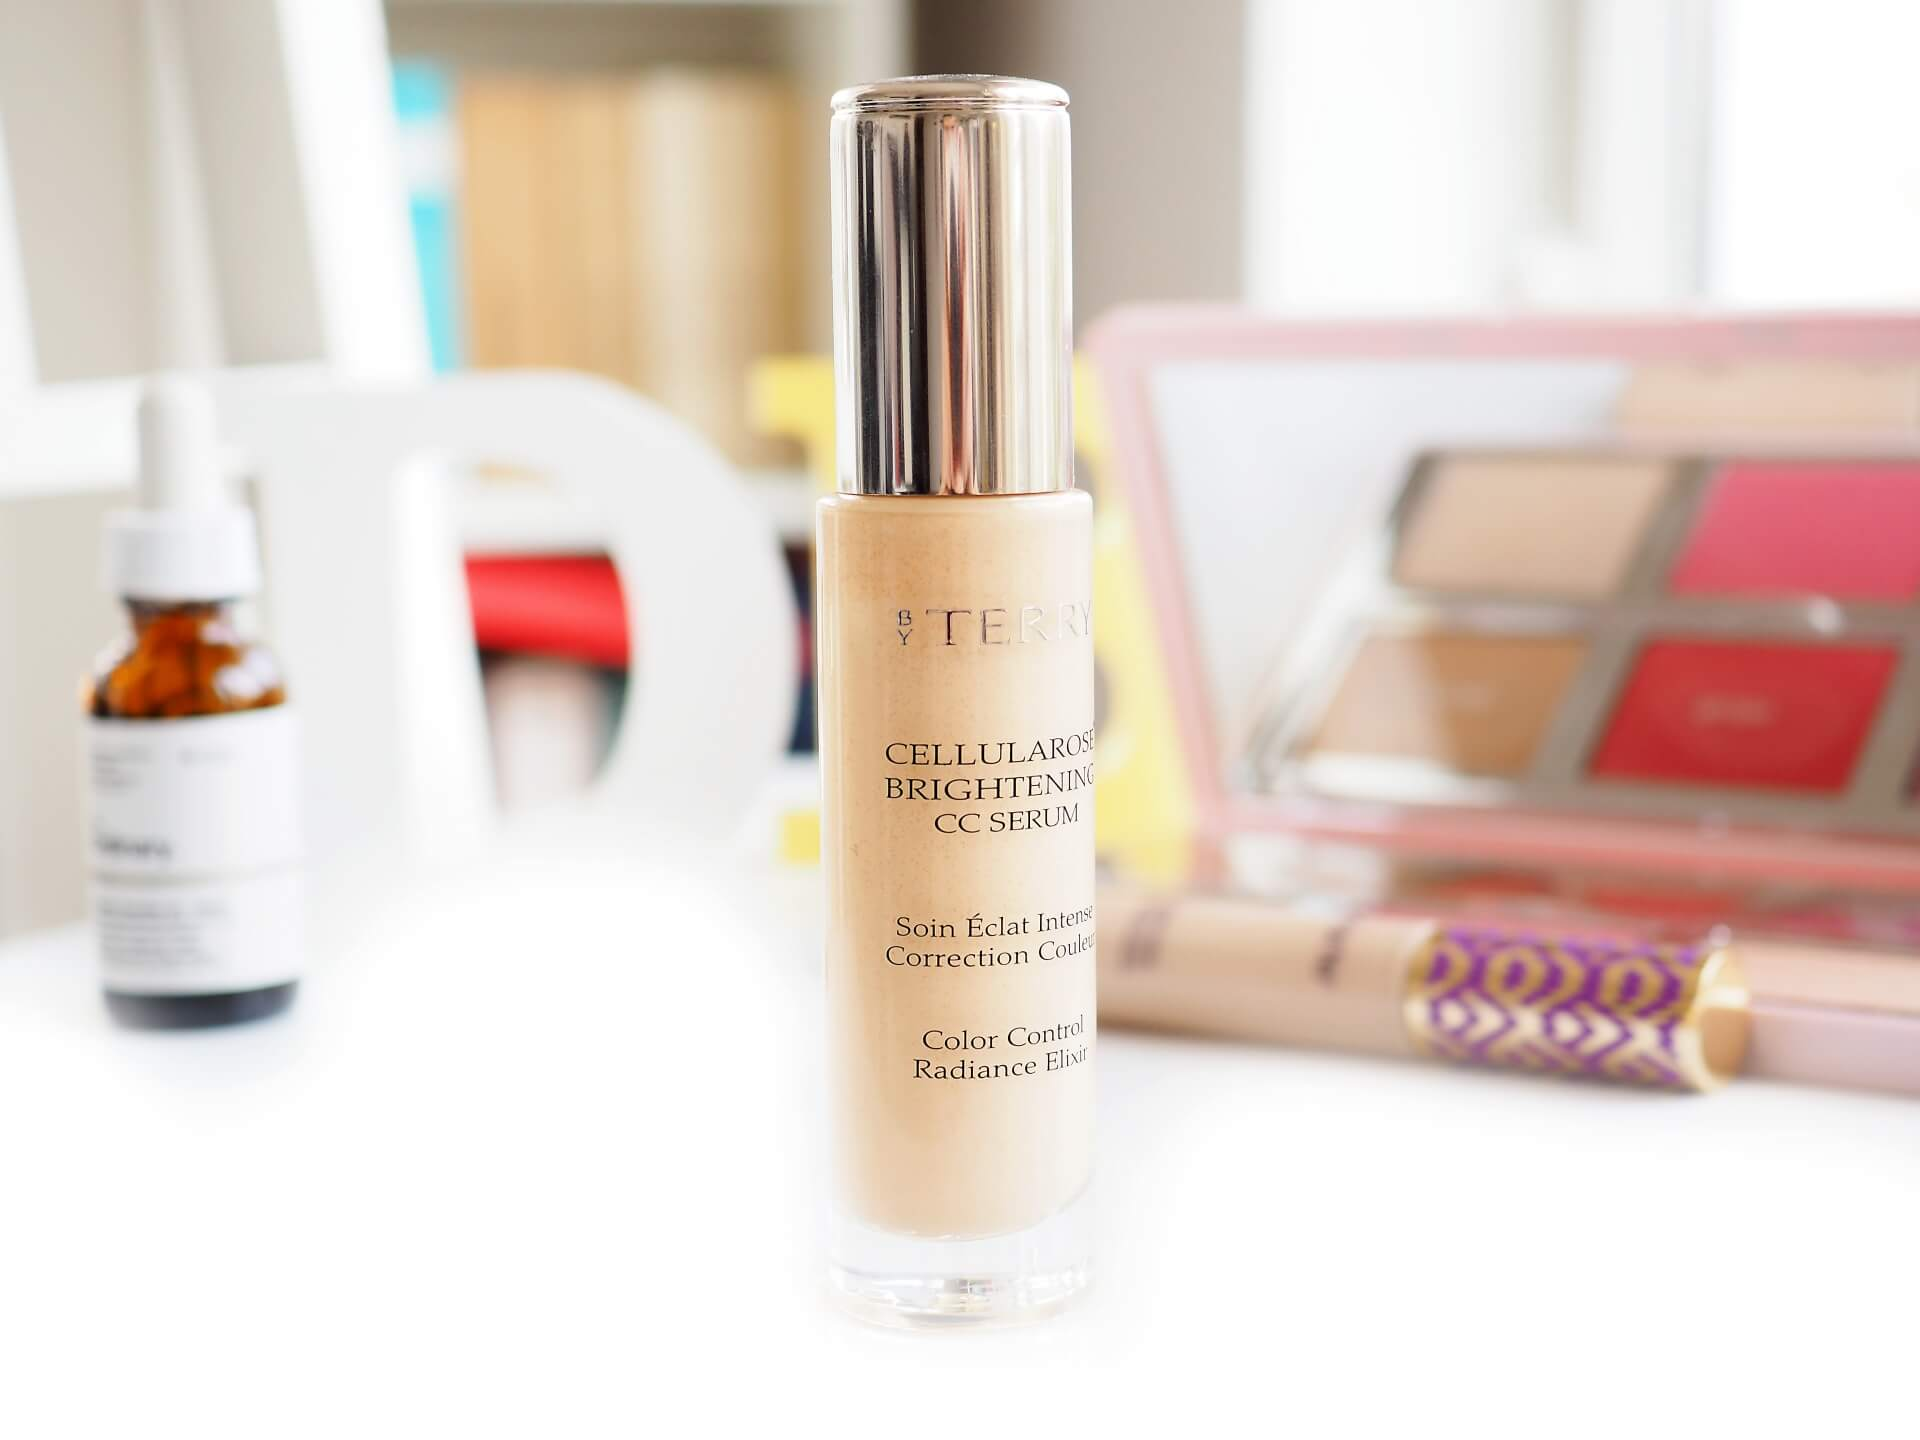 By Terry Cellularose Brightening CC Lumi Serum